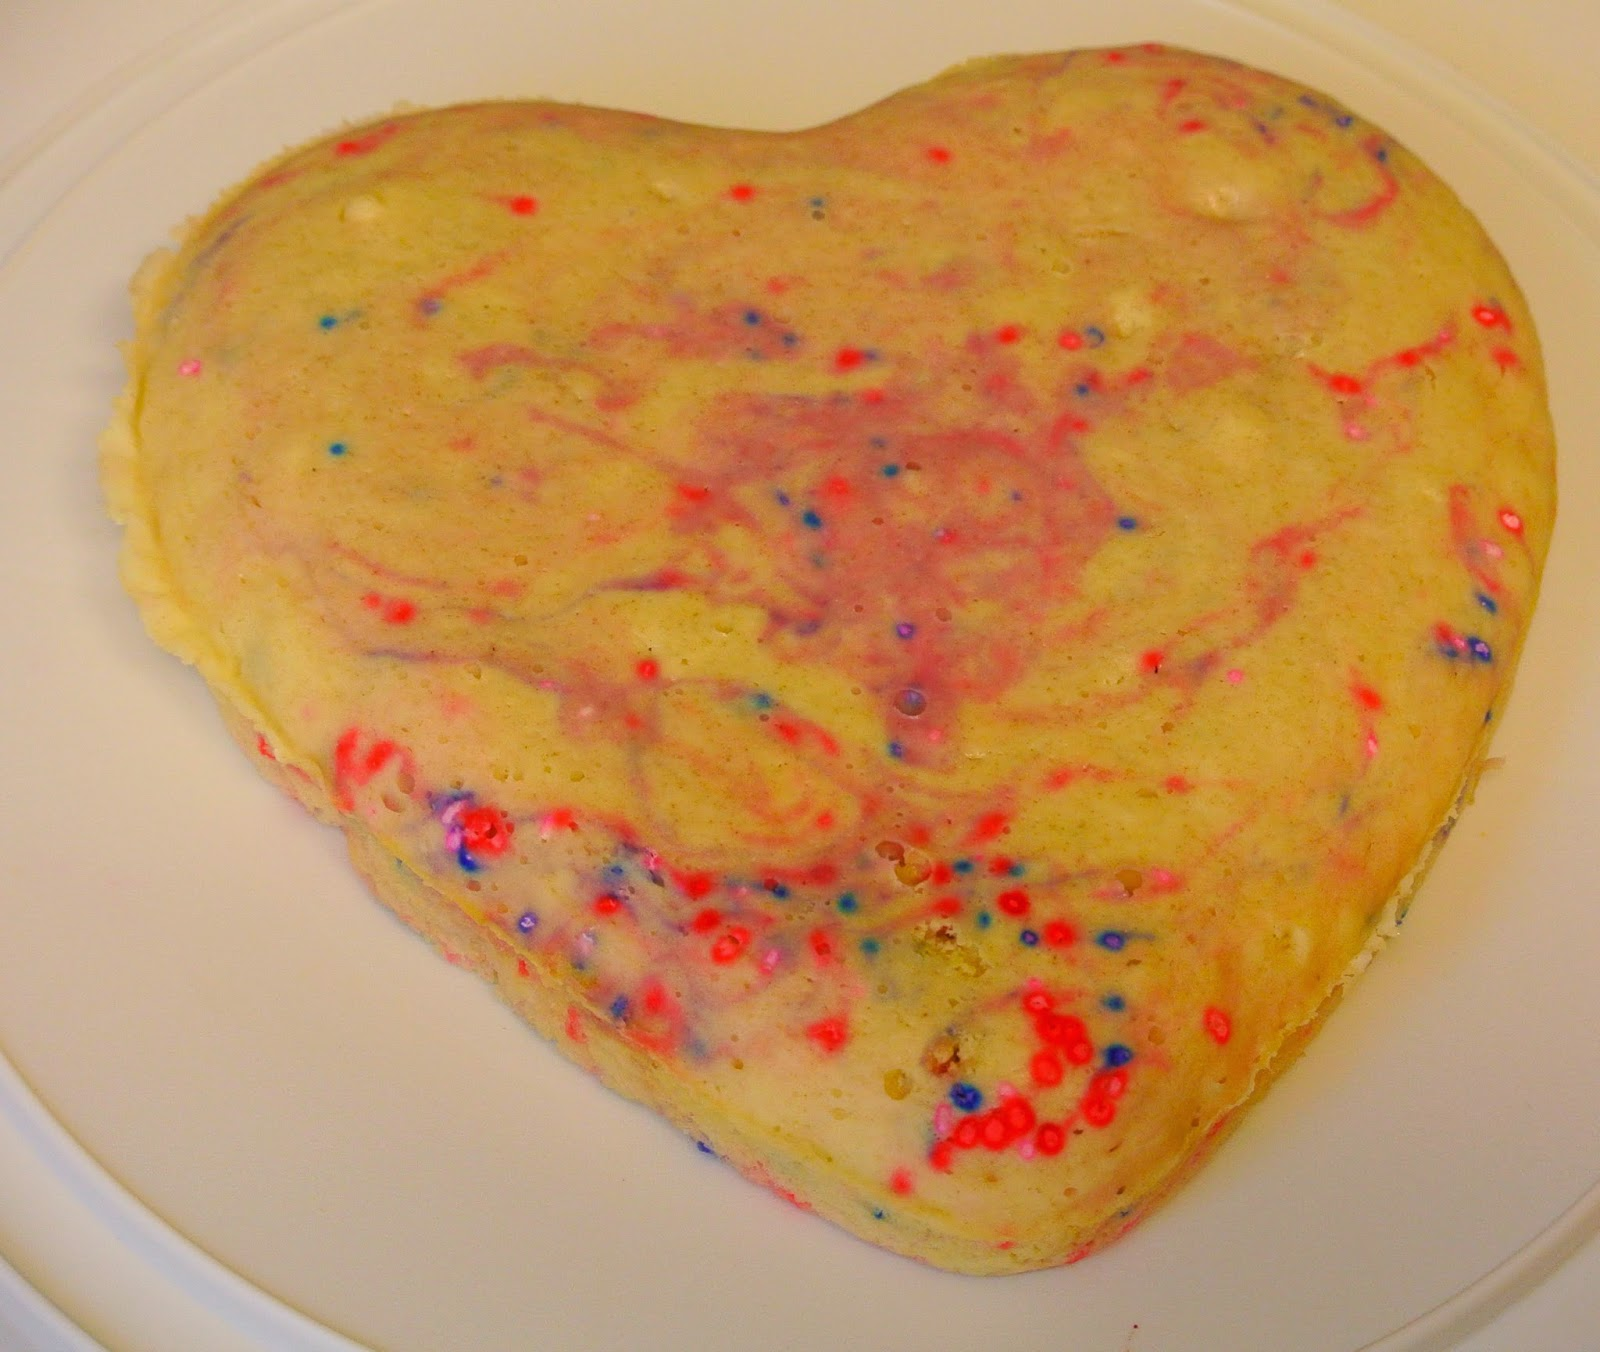 Heart Pancake, Breakfast food